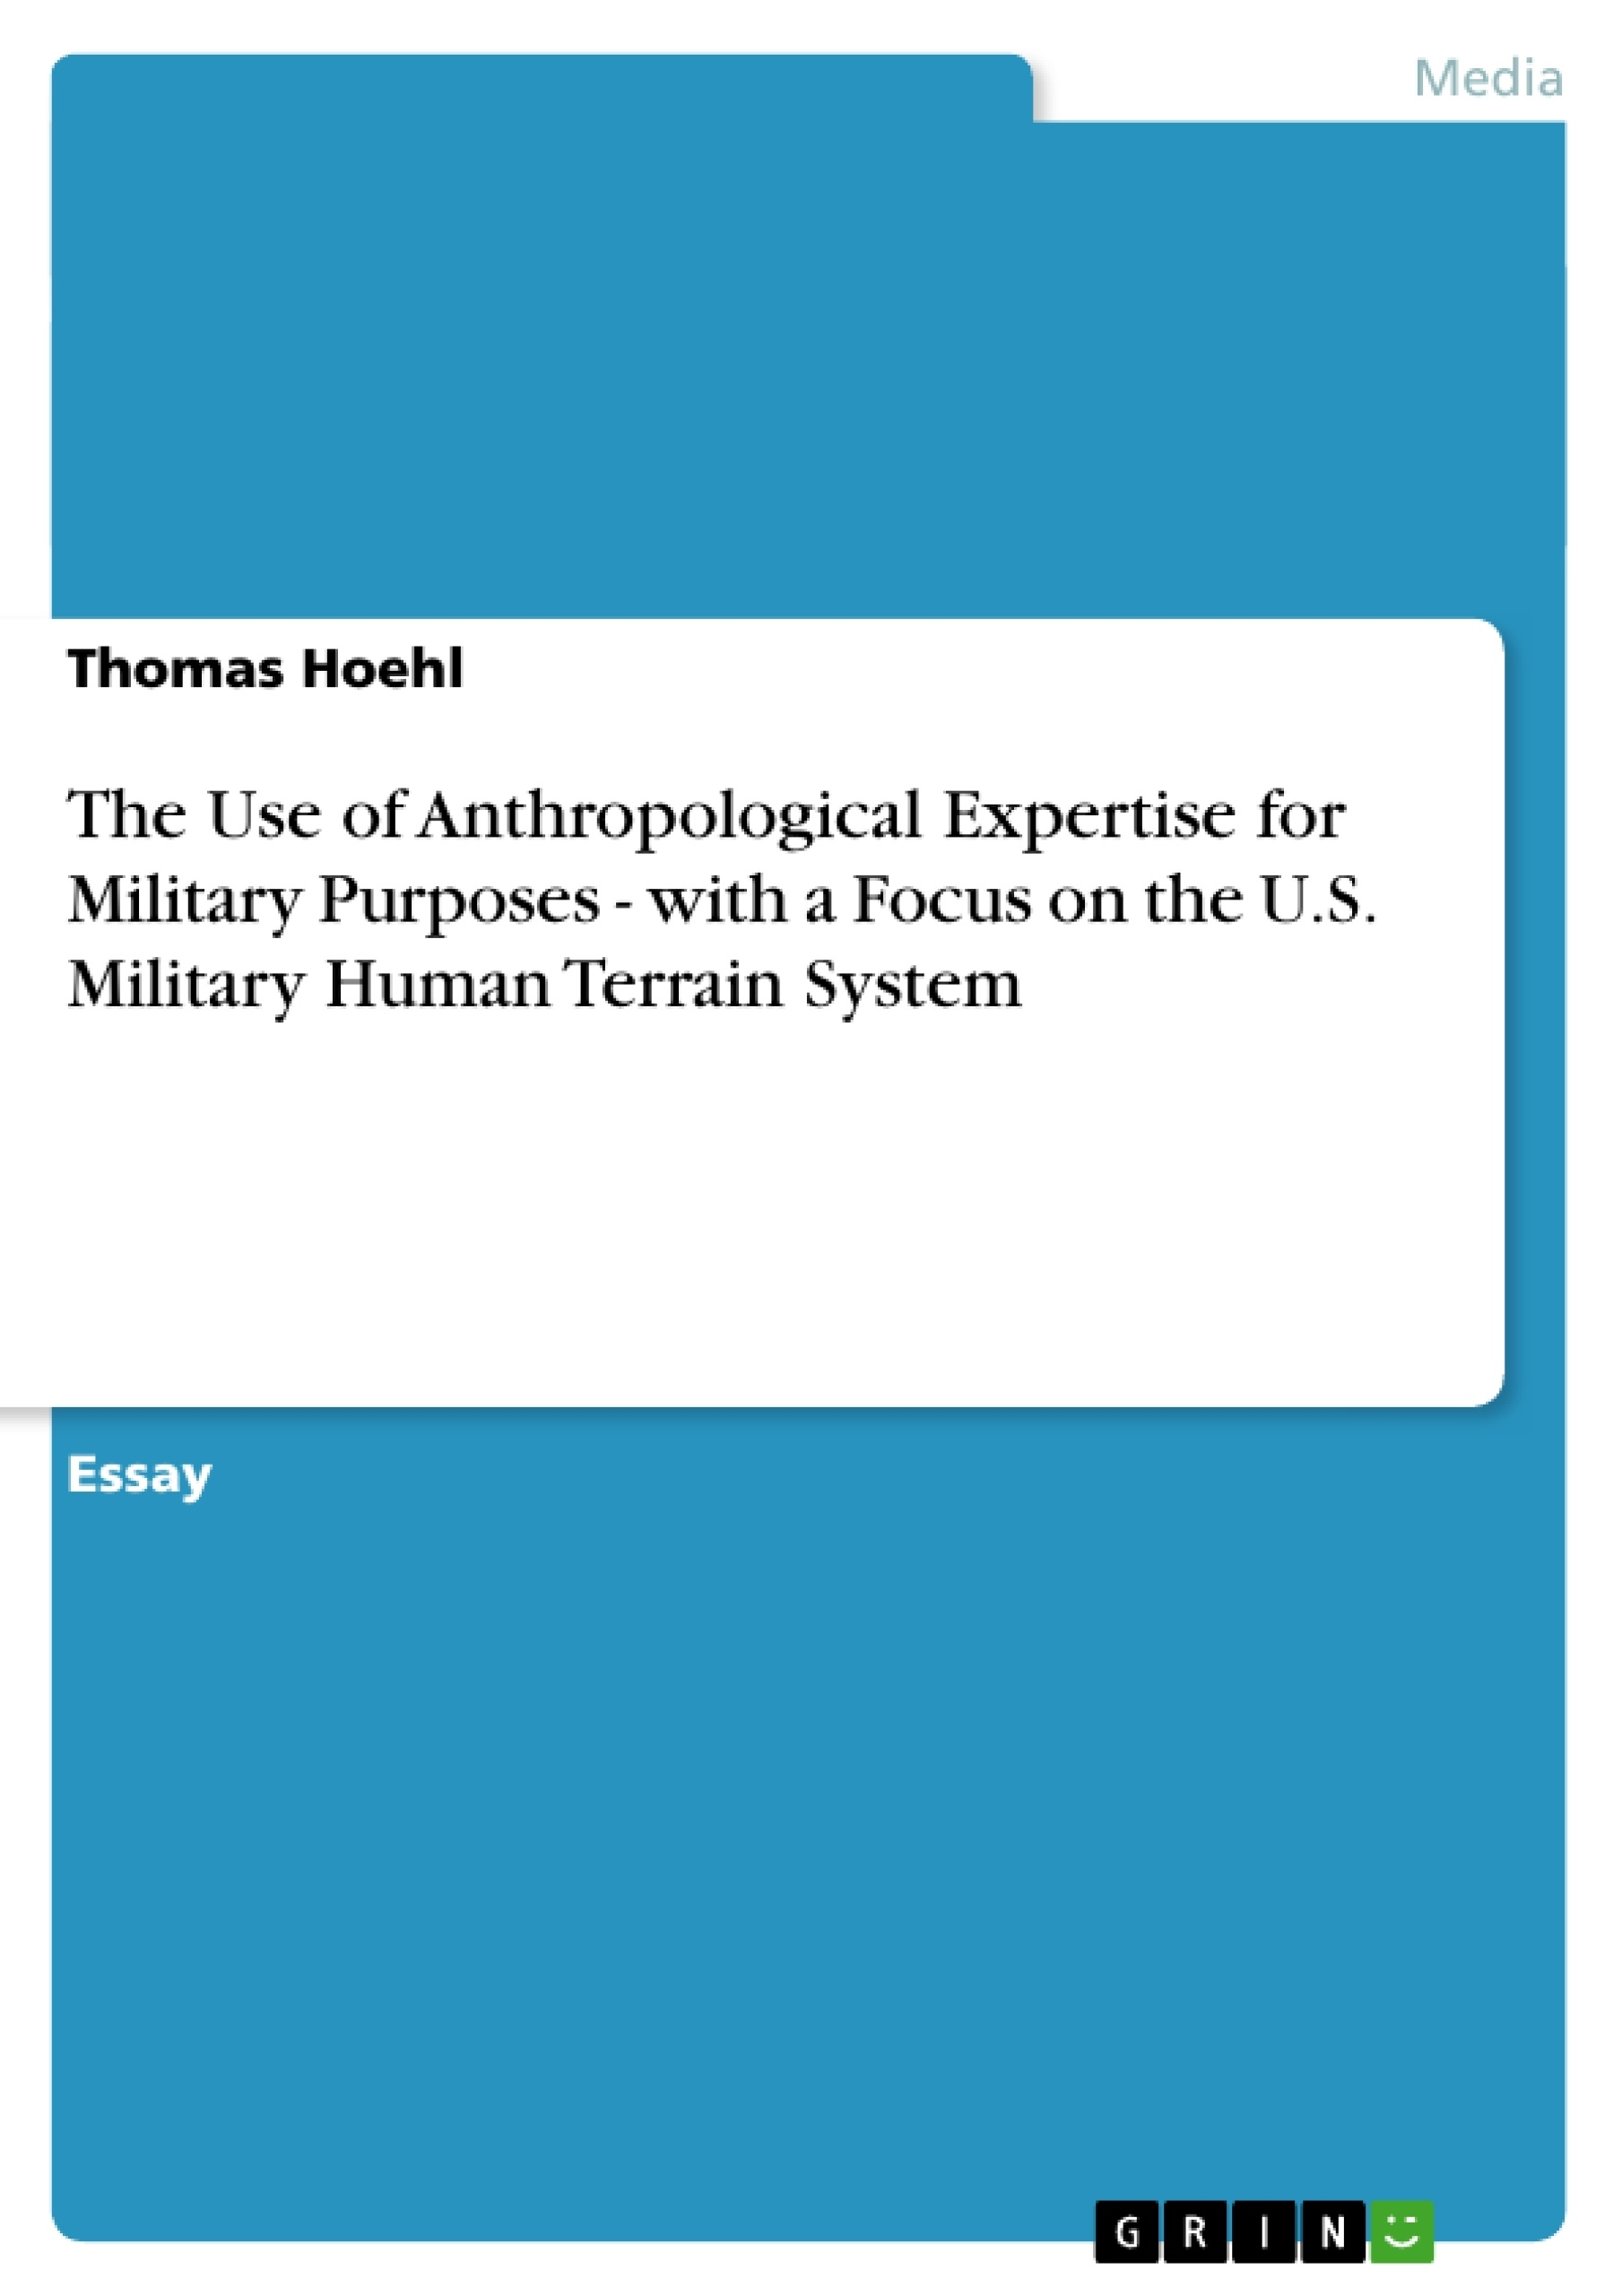 Title: The Use of Anthropological Expertise for Military Purposes - with a Focus on the U.S. Military Human Terrain System